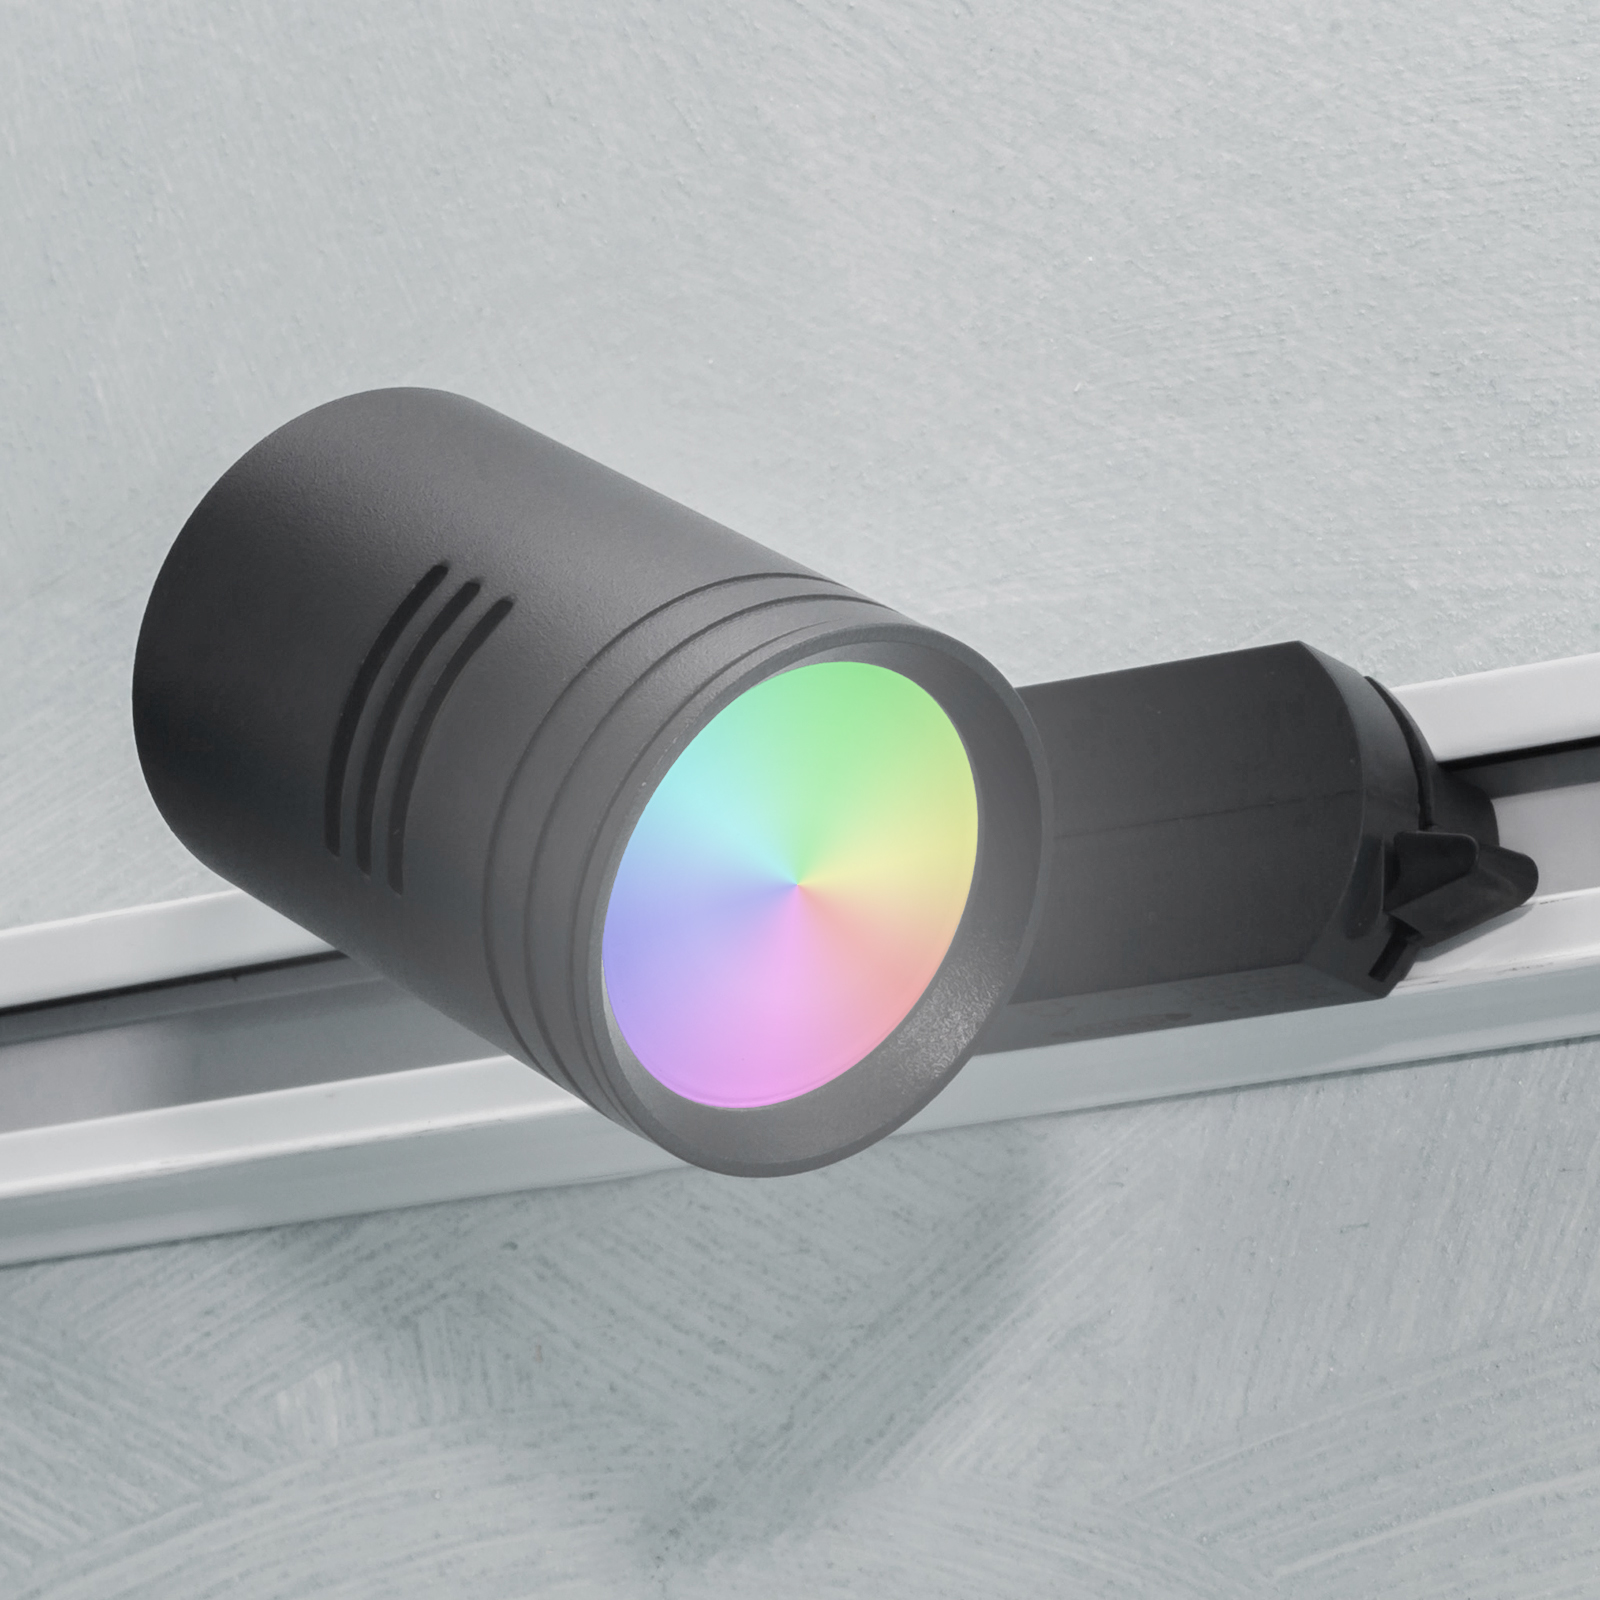 LED track light single-phase GU10 multicolor RGB light chromotherapy 230V